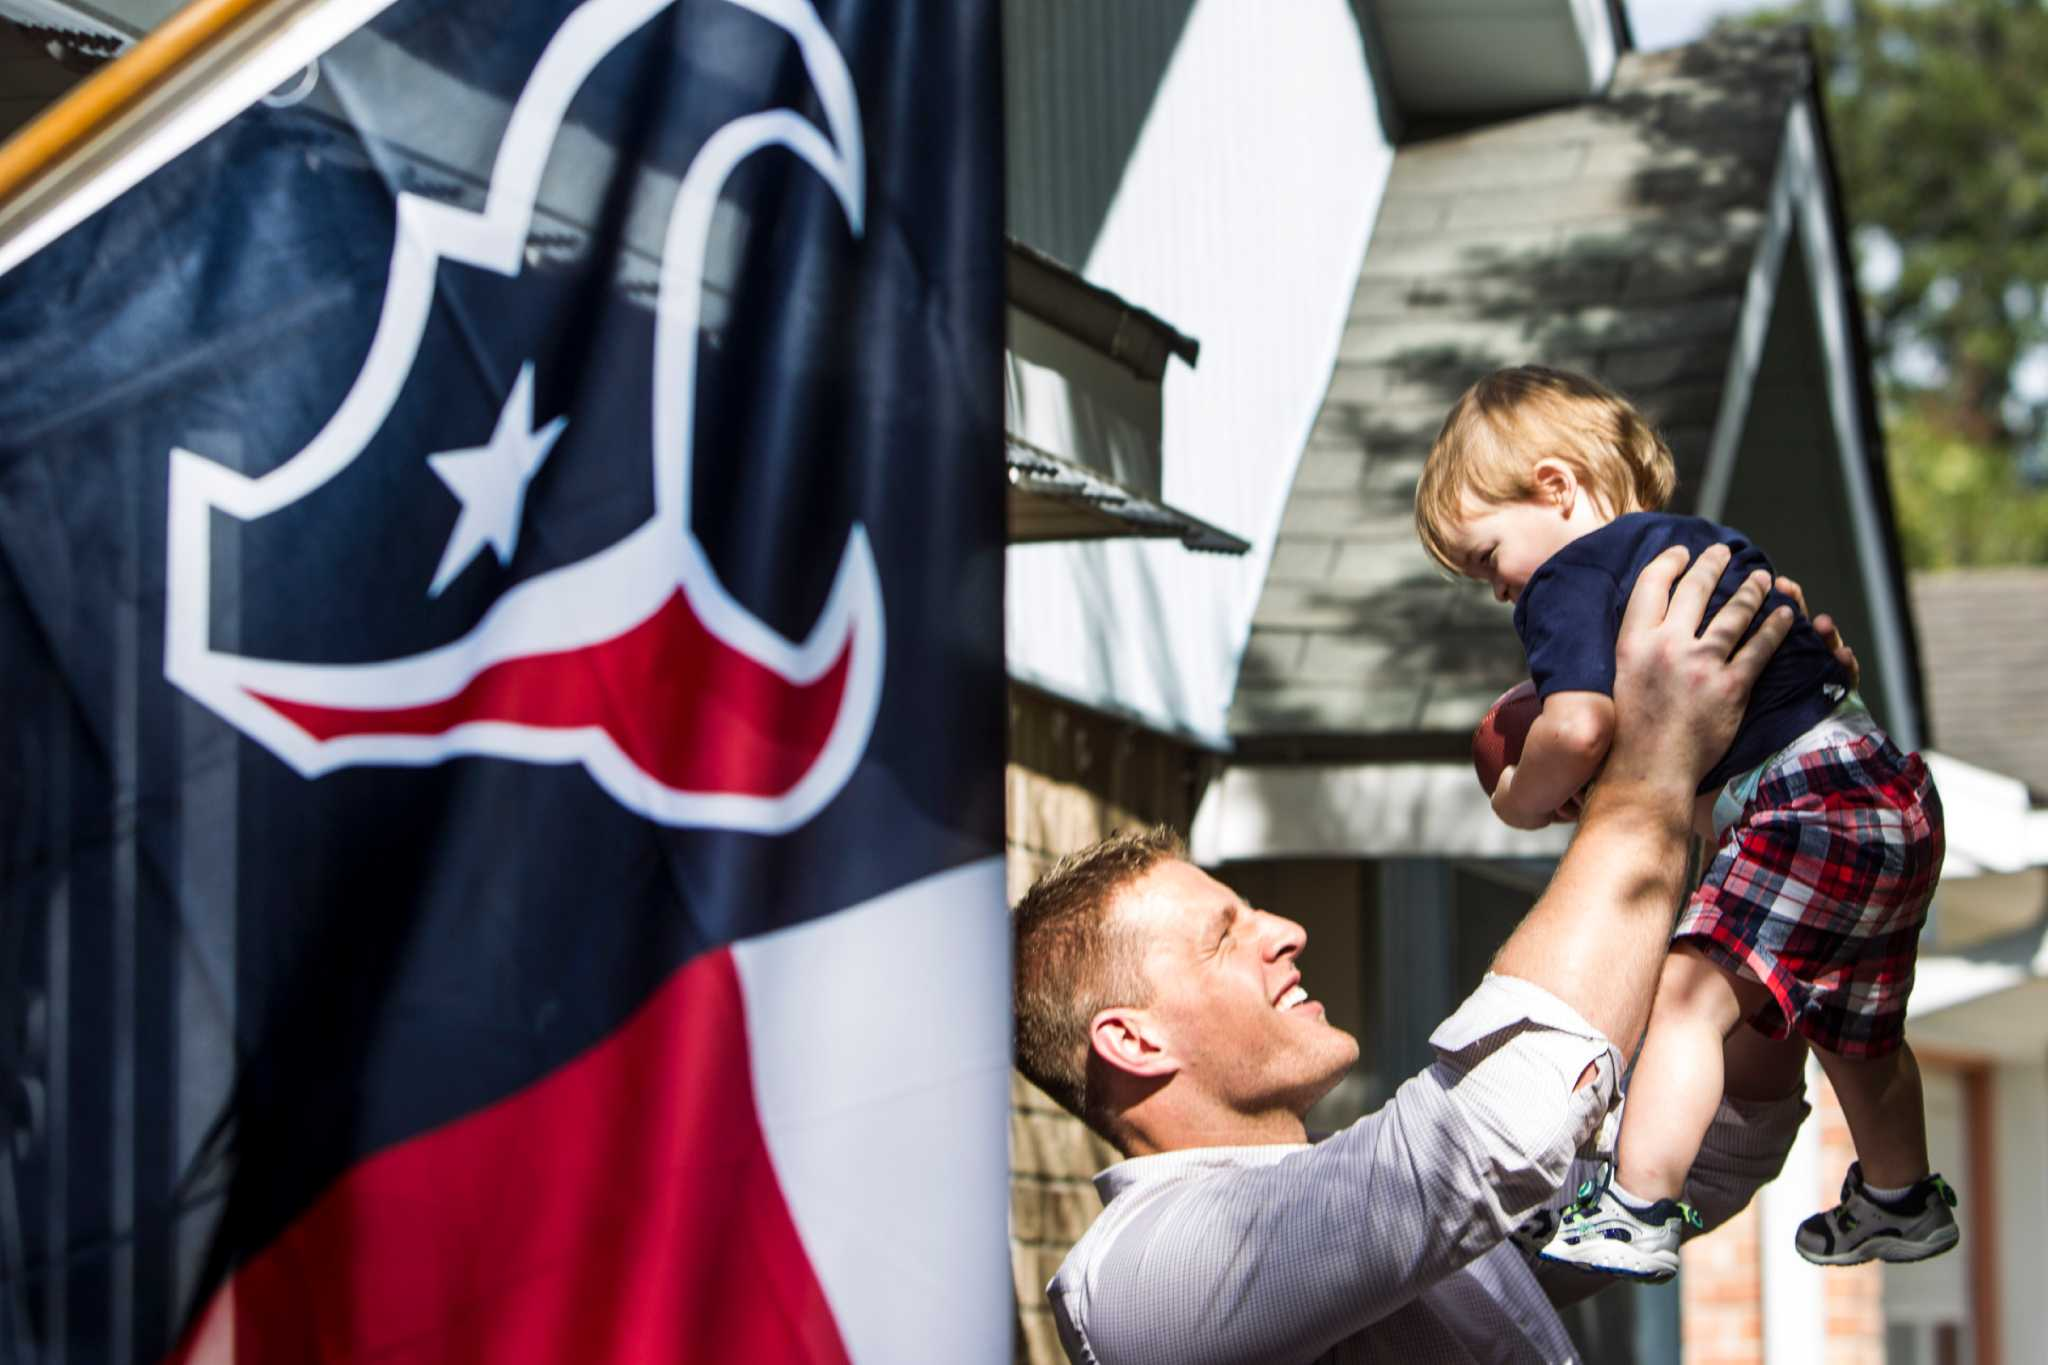 Jj watt on dancing fans and turning down a commercial houston jj watt on dancing fans and turning down a commercial houston chronicle kristyandbryce Image collections